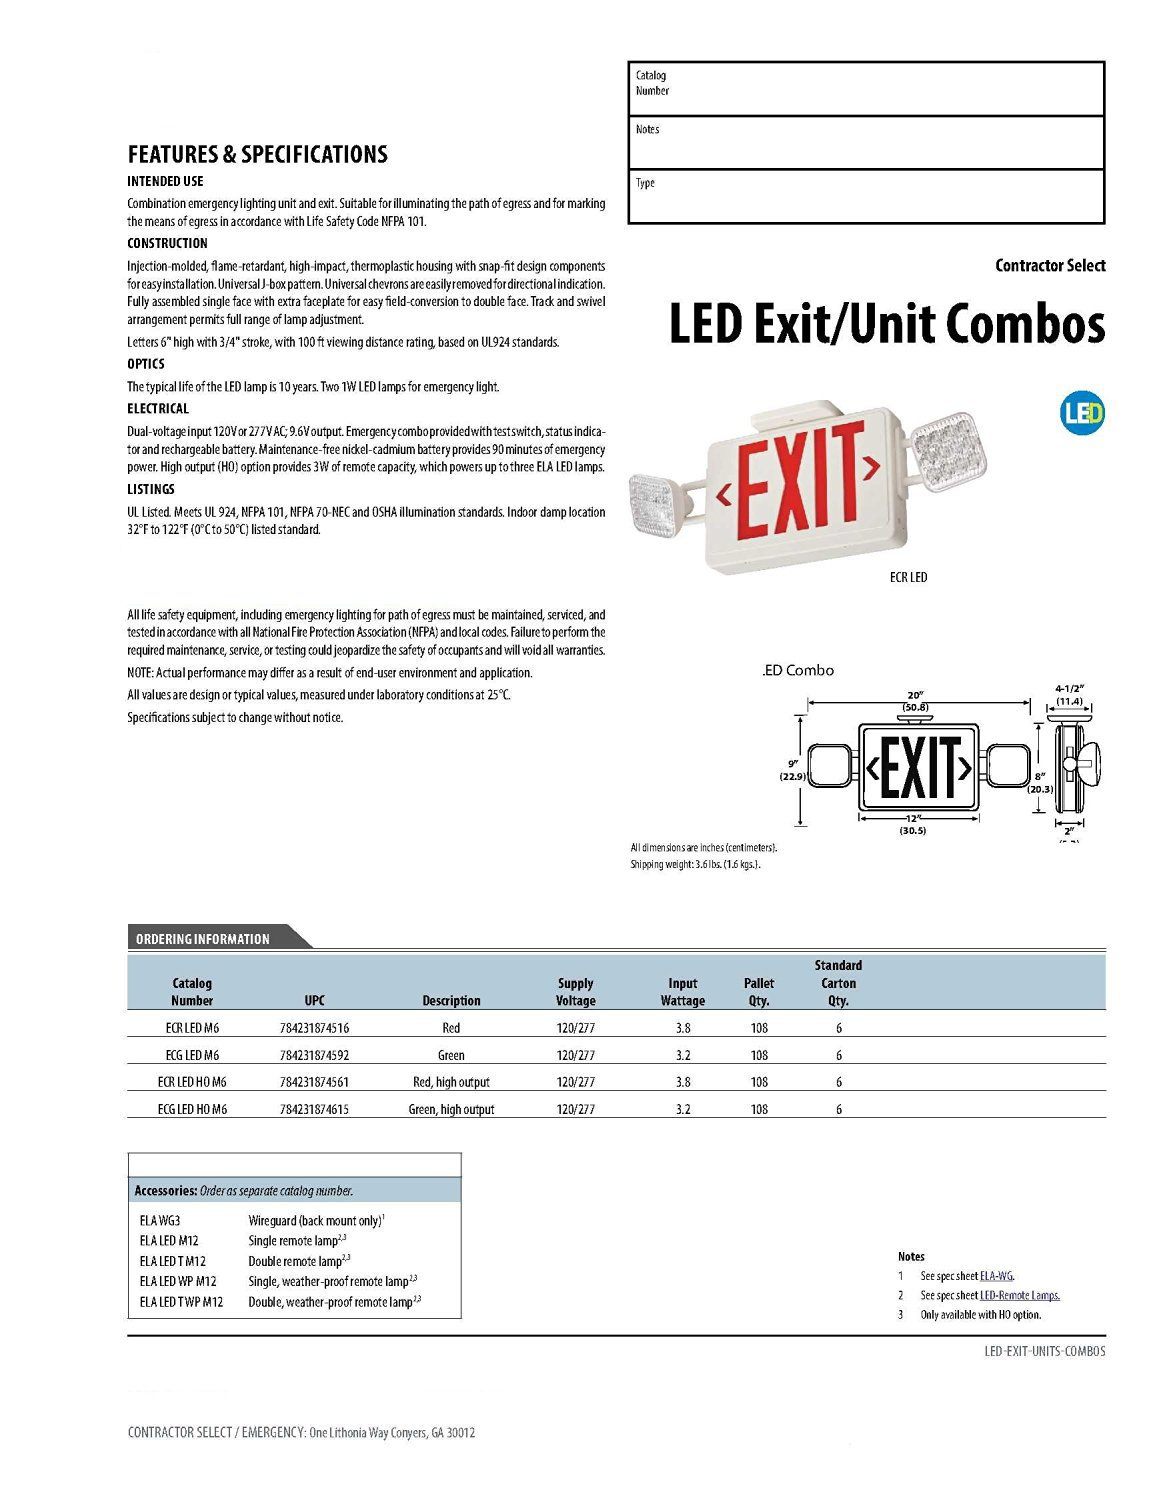 Lithonia Lighting Ecr Led Ho M6 Contractor Select